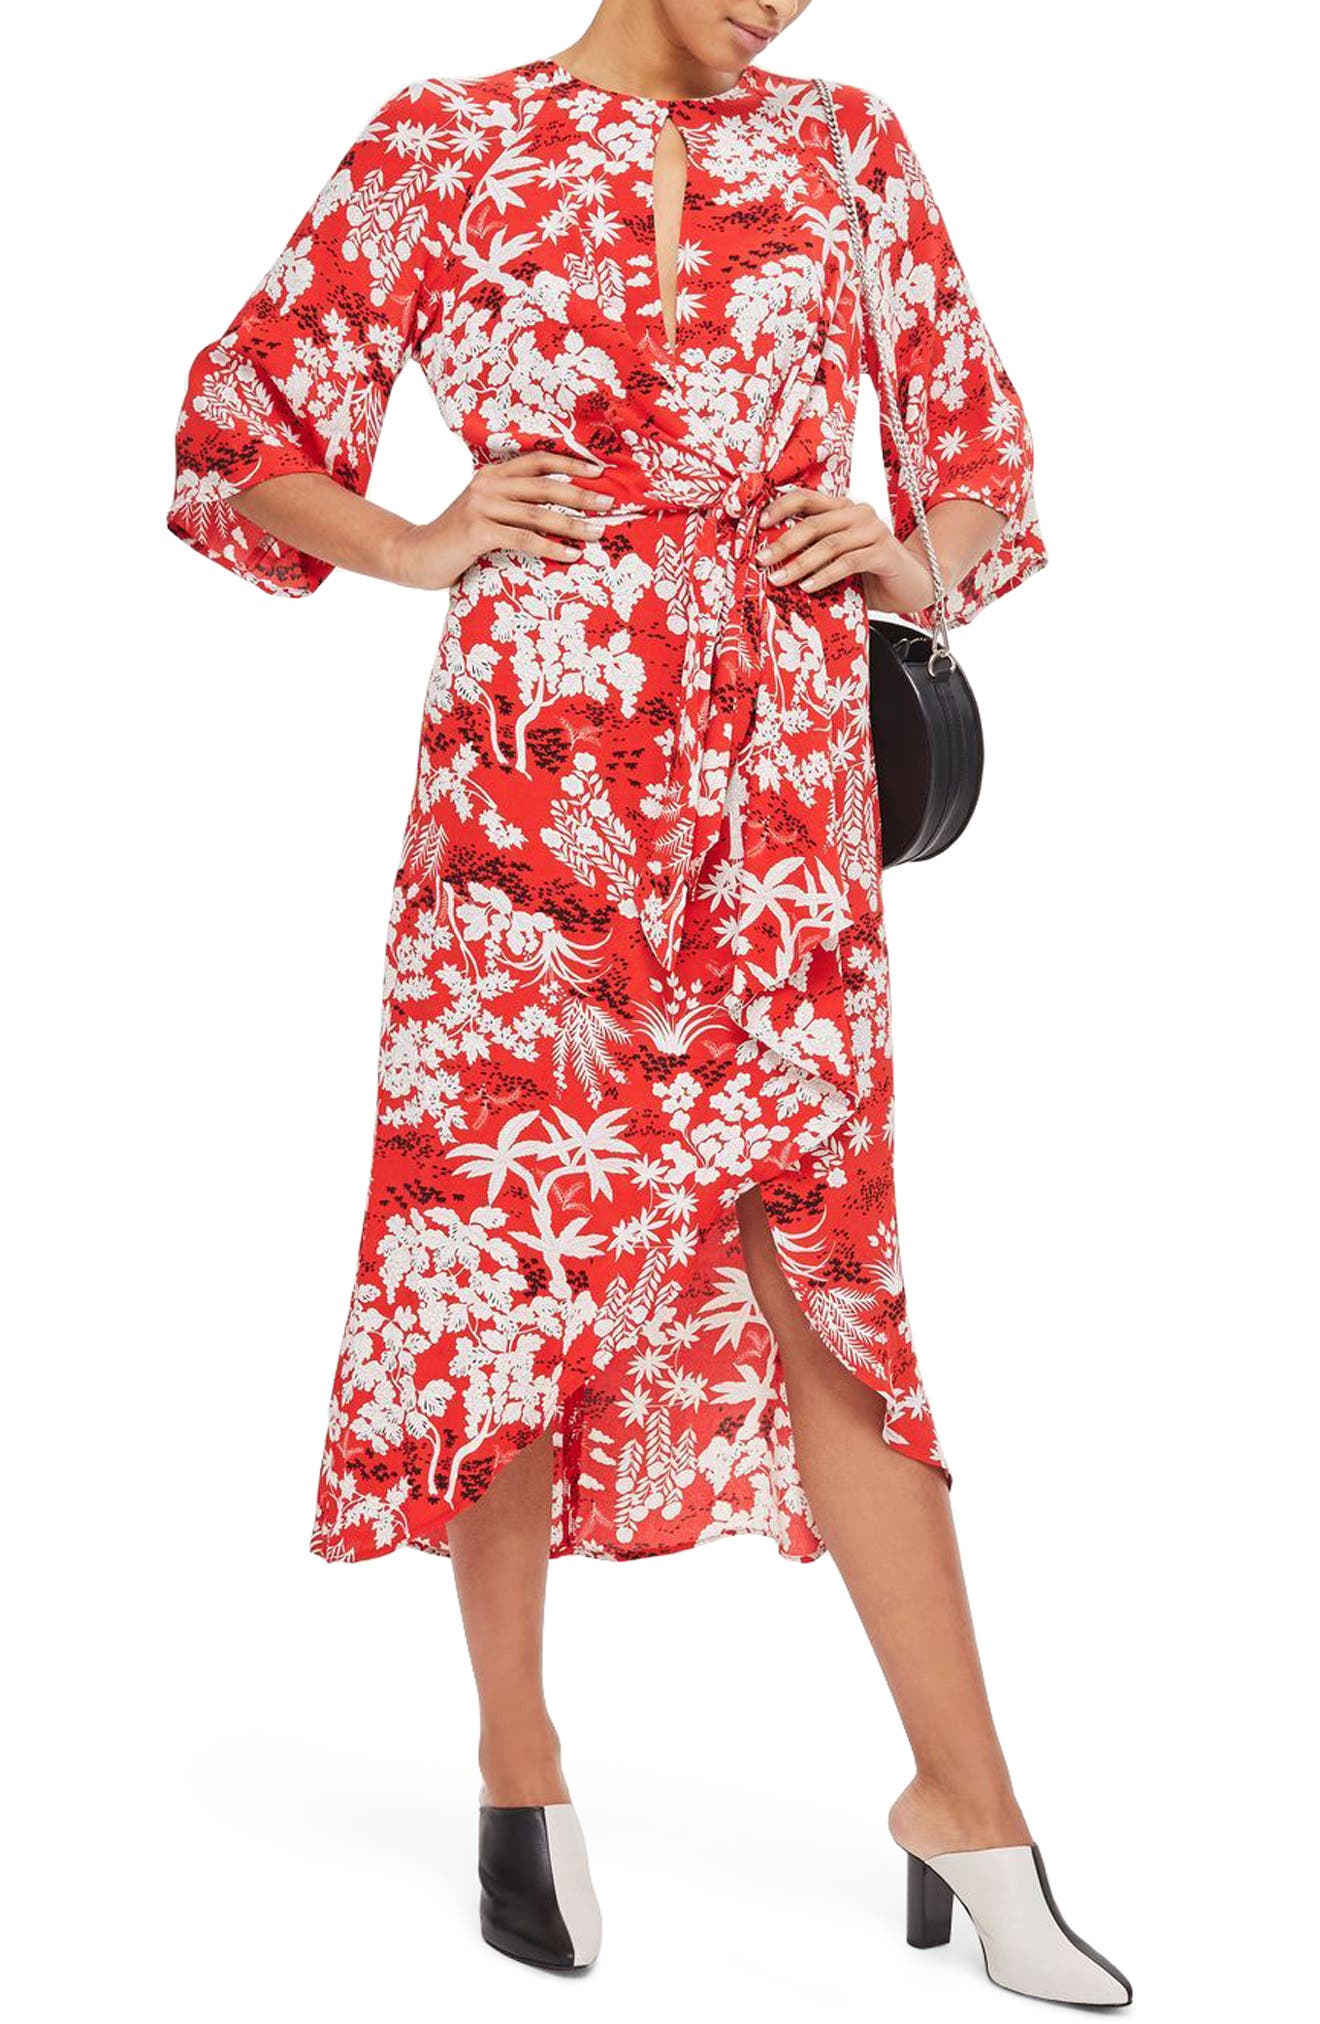 Knotted Midi Dress,                             Main thumbnail 1, color,                             Red Multi